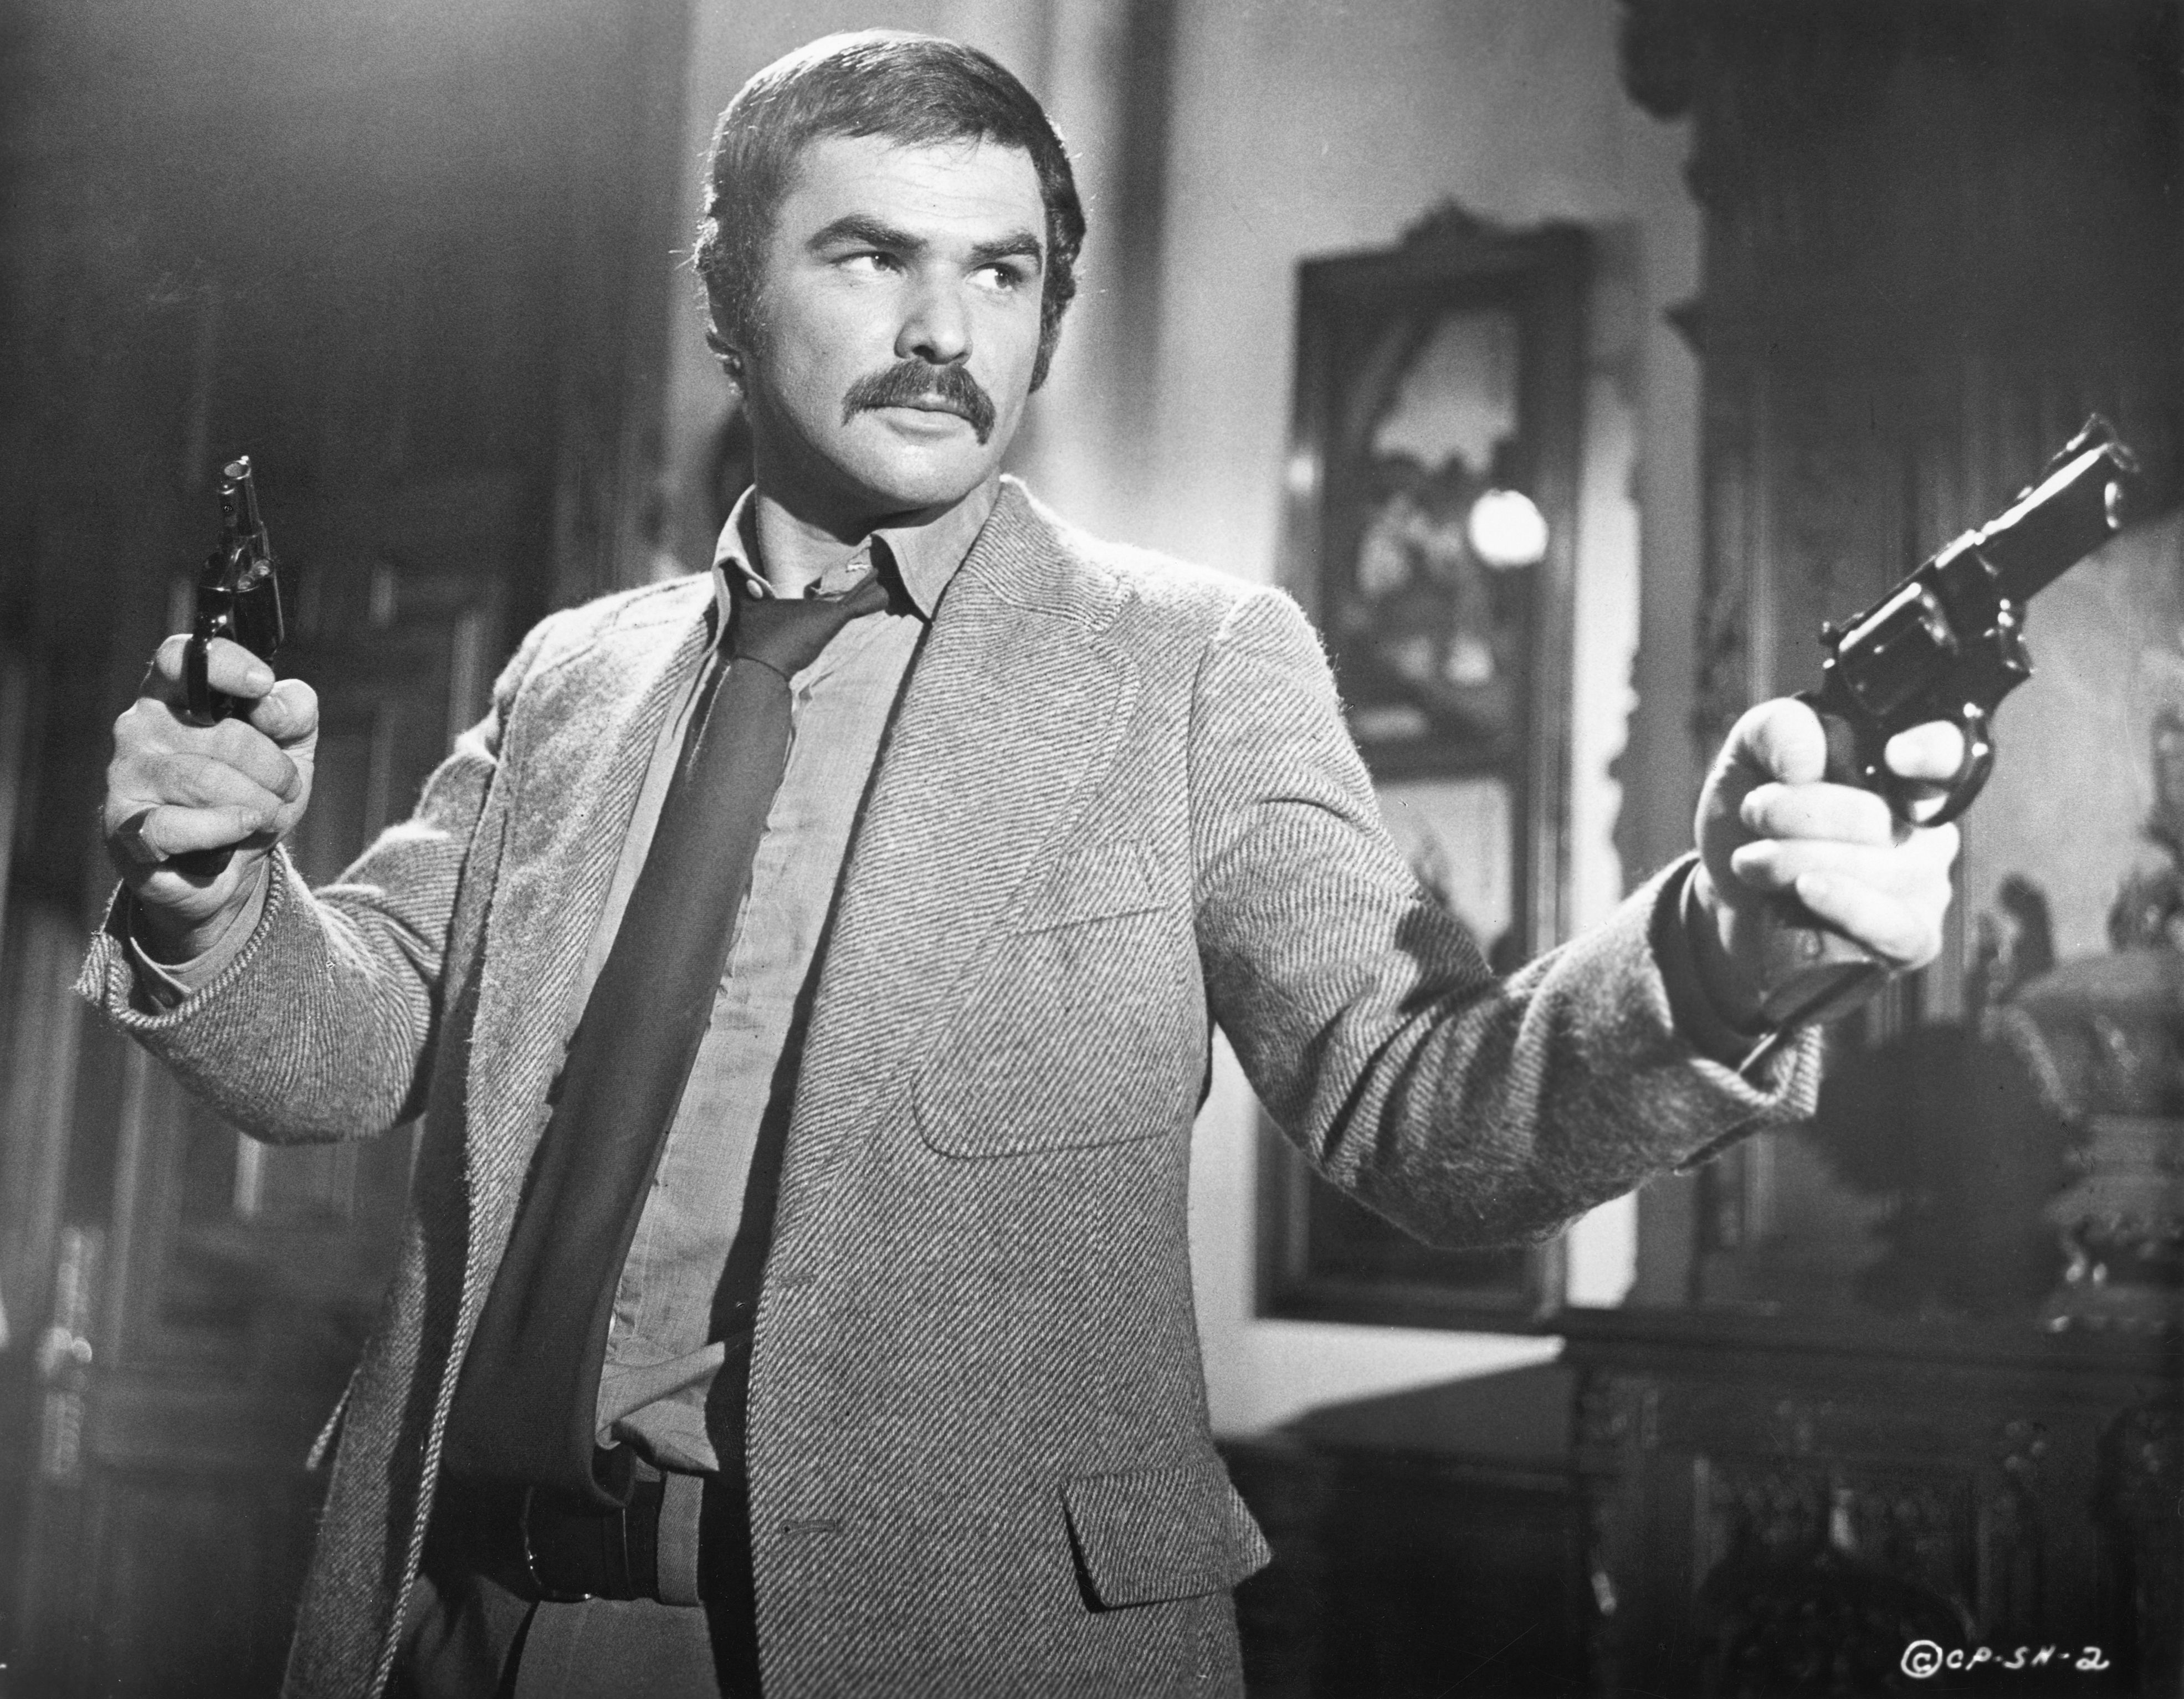 The 8 best burt reynolds movies and tv shows of all time